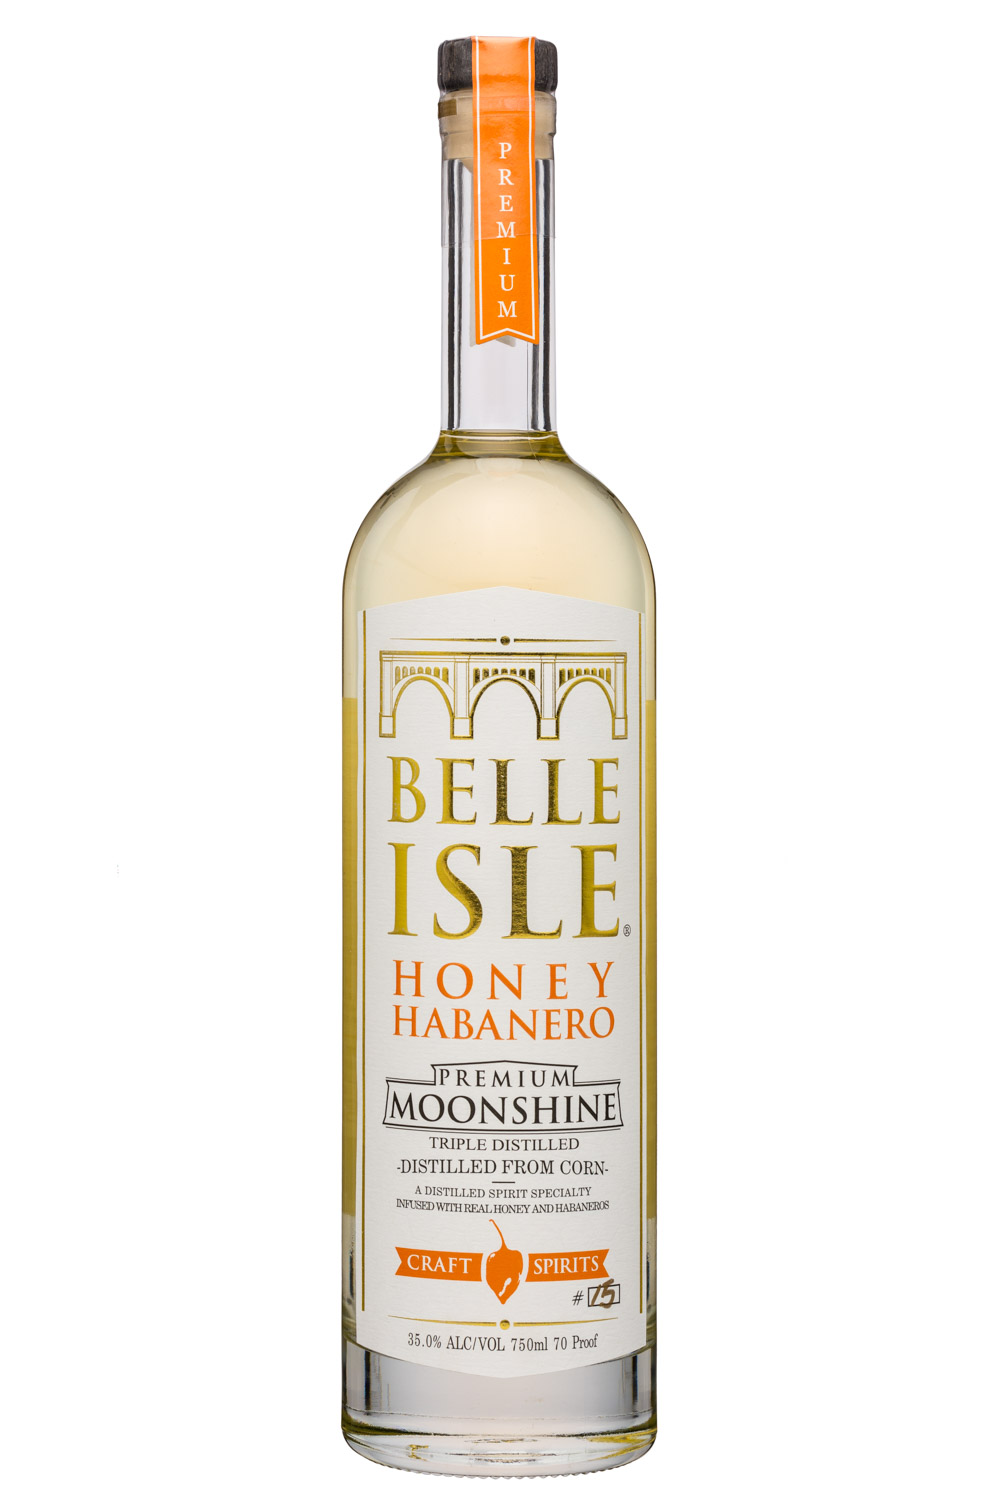 Belle Isle Craft Spirits: BelleIsle-750ml-Moonshine-HoneyHabanero